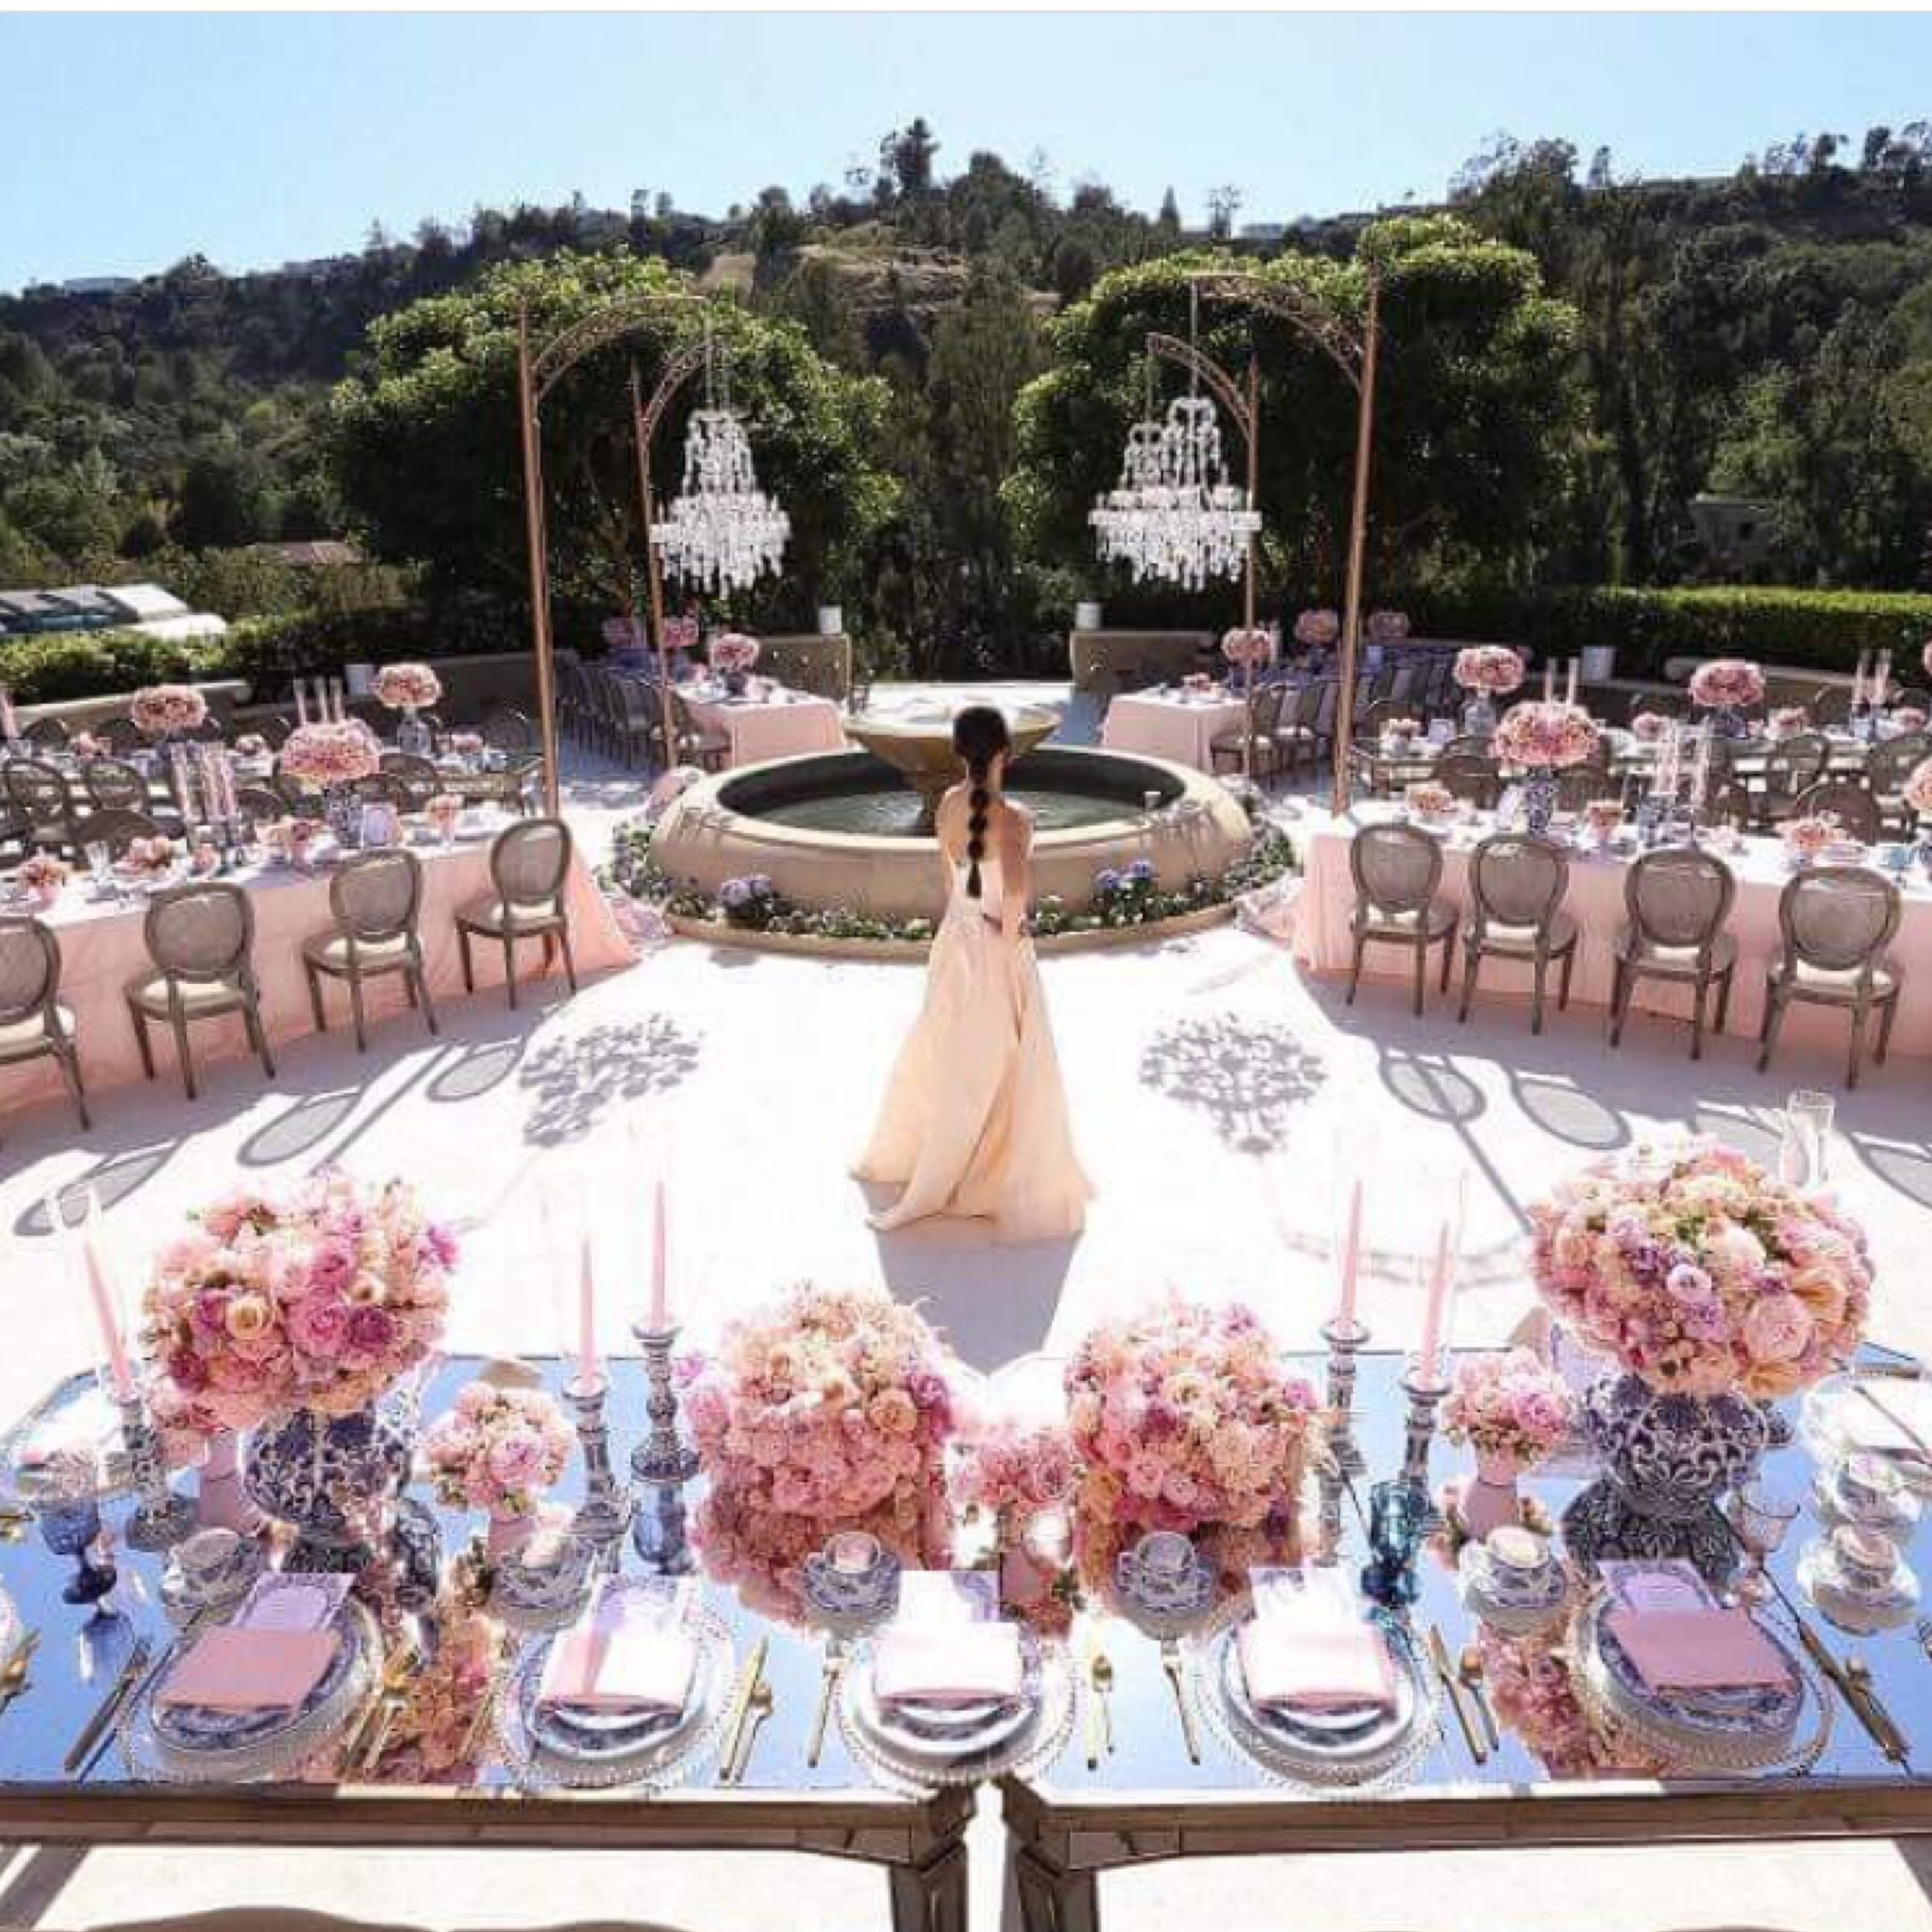 Now thats what you call a fairytale wedding wedding decor now thats what you call a fairytale wedding junglespirit Choice Image